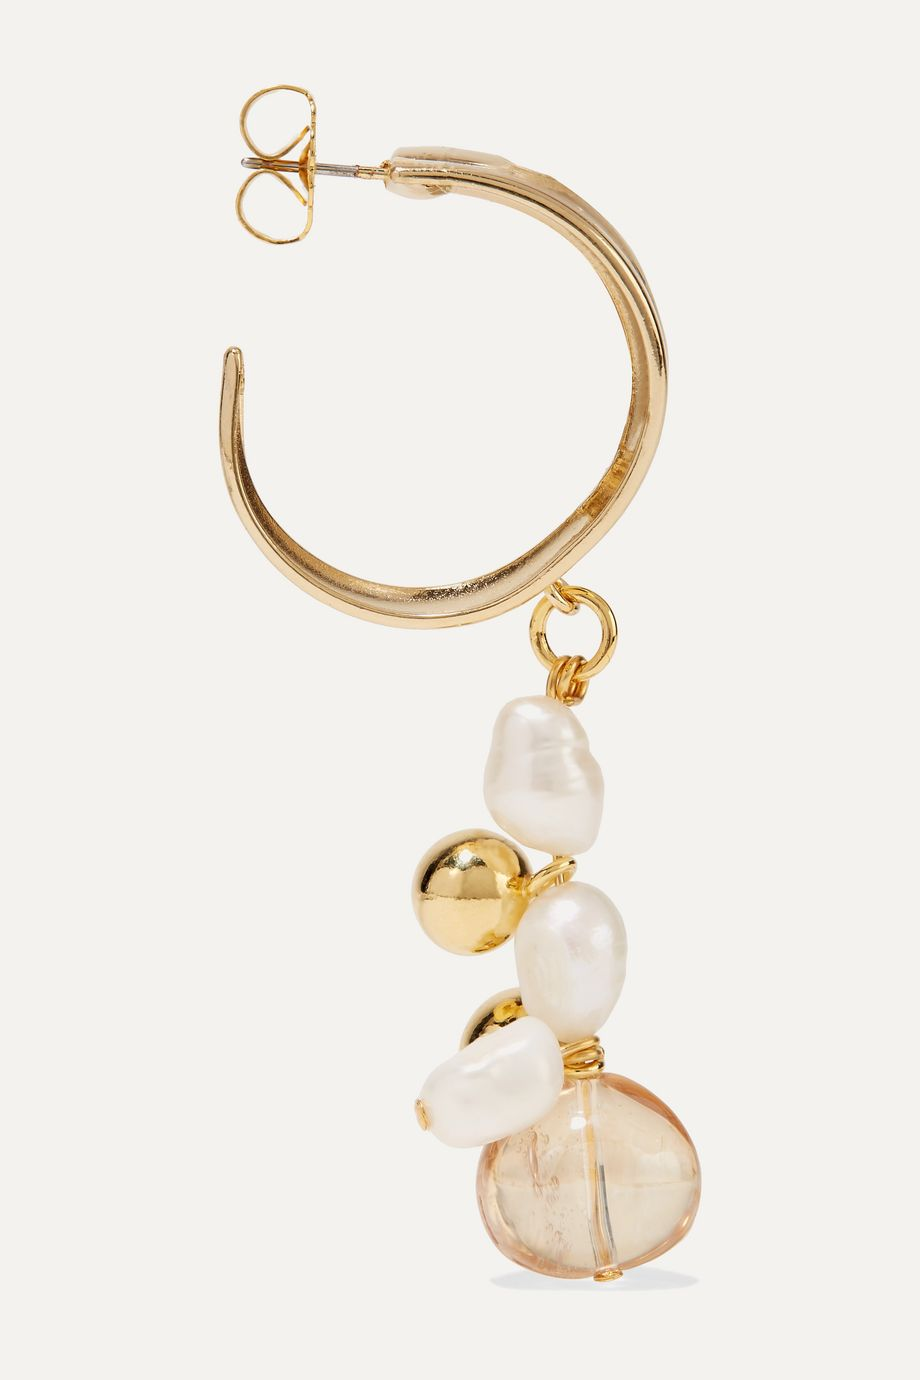 Mounser Cirrus gold-plated, pearl and glass earrings